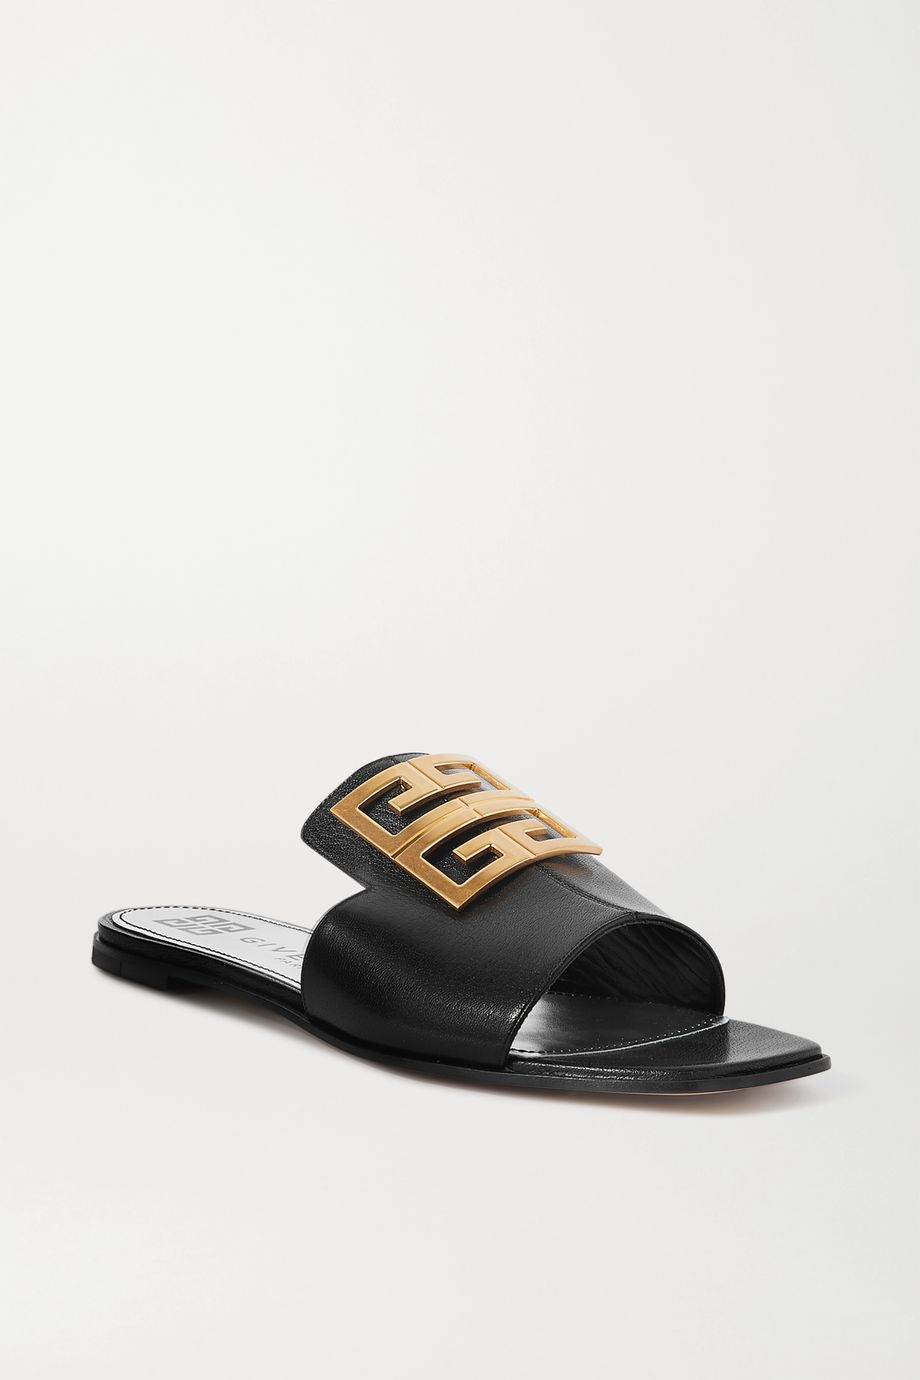 Givenchy 4G logo-embellished leather sandals